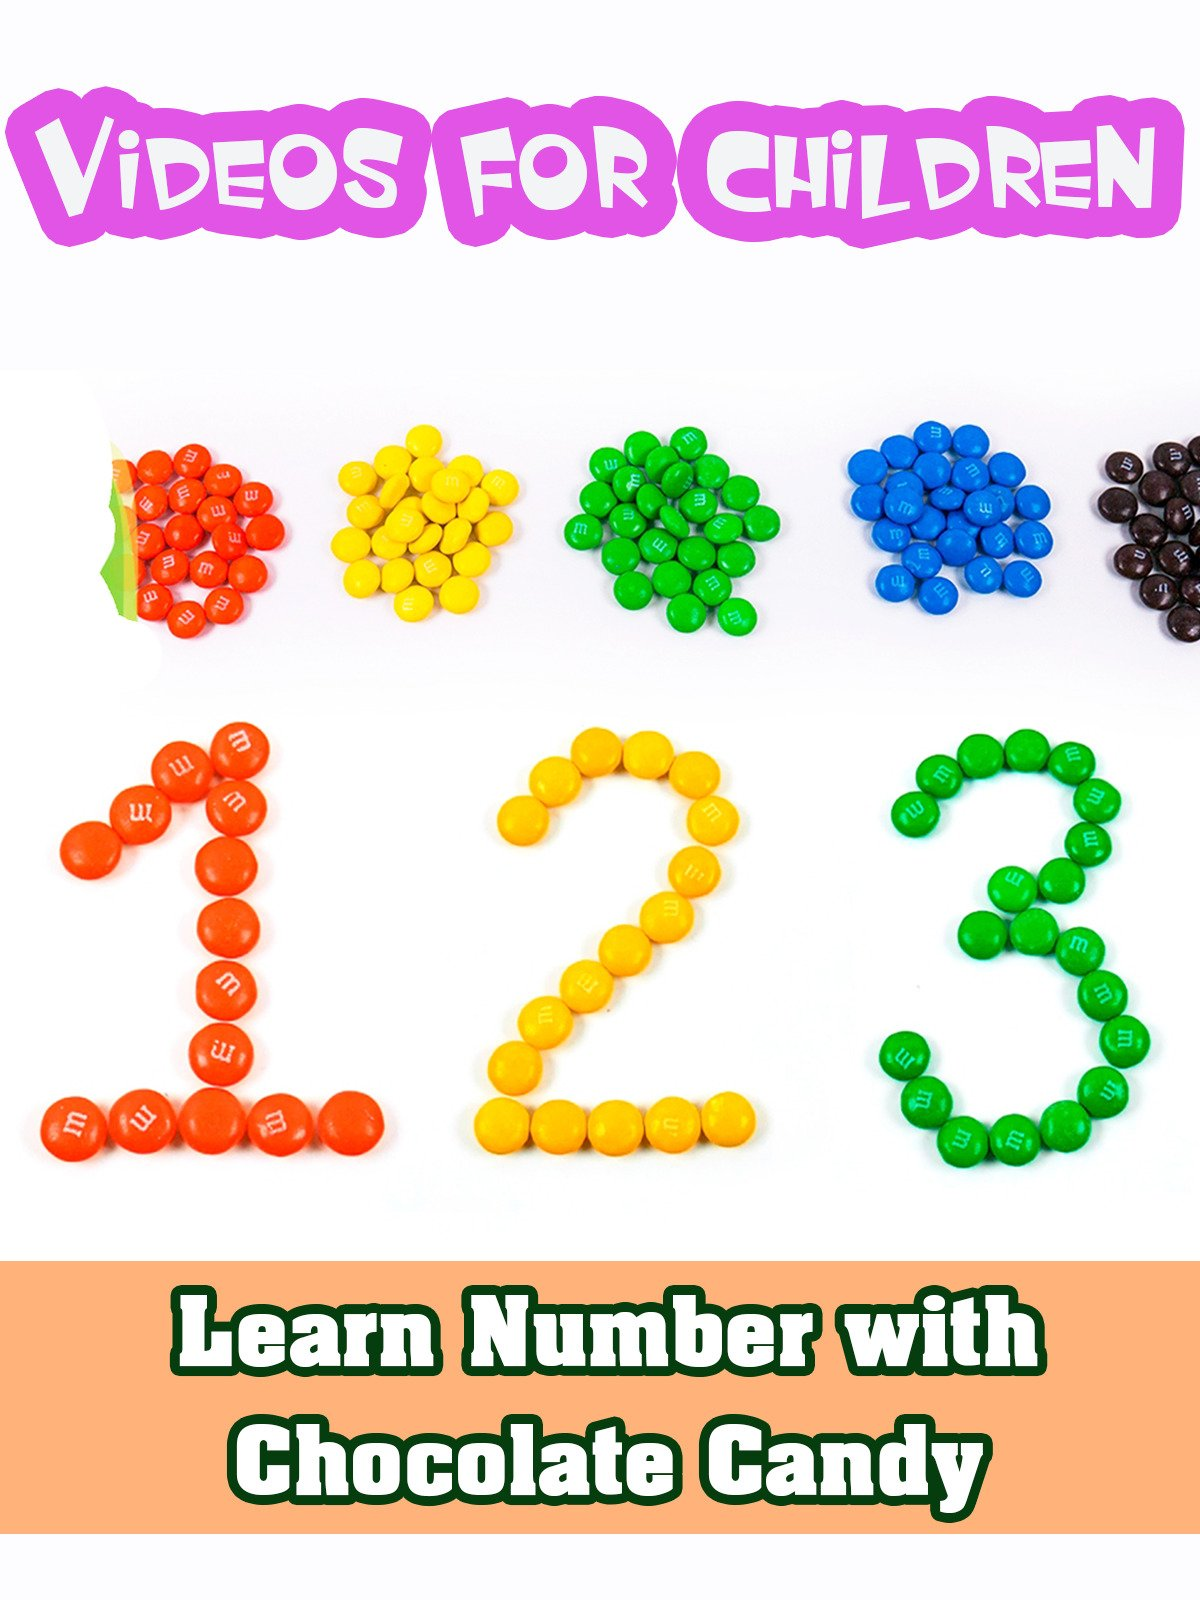 Learn Number with Chocolate Candy